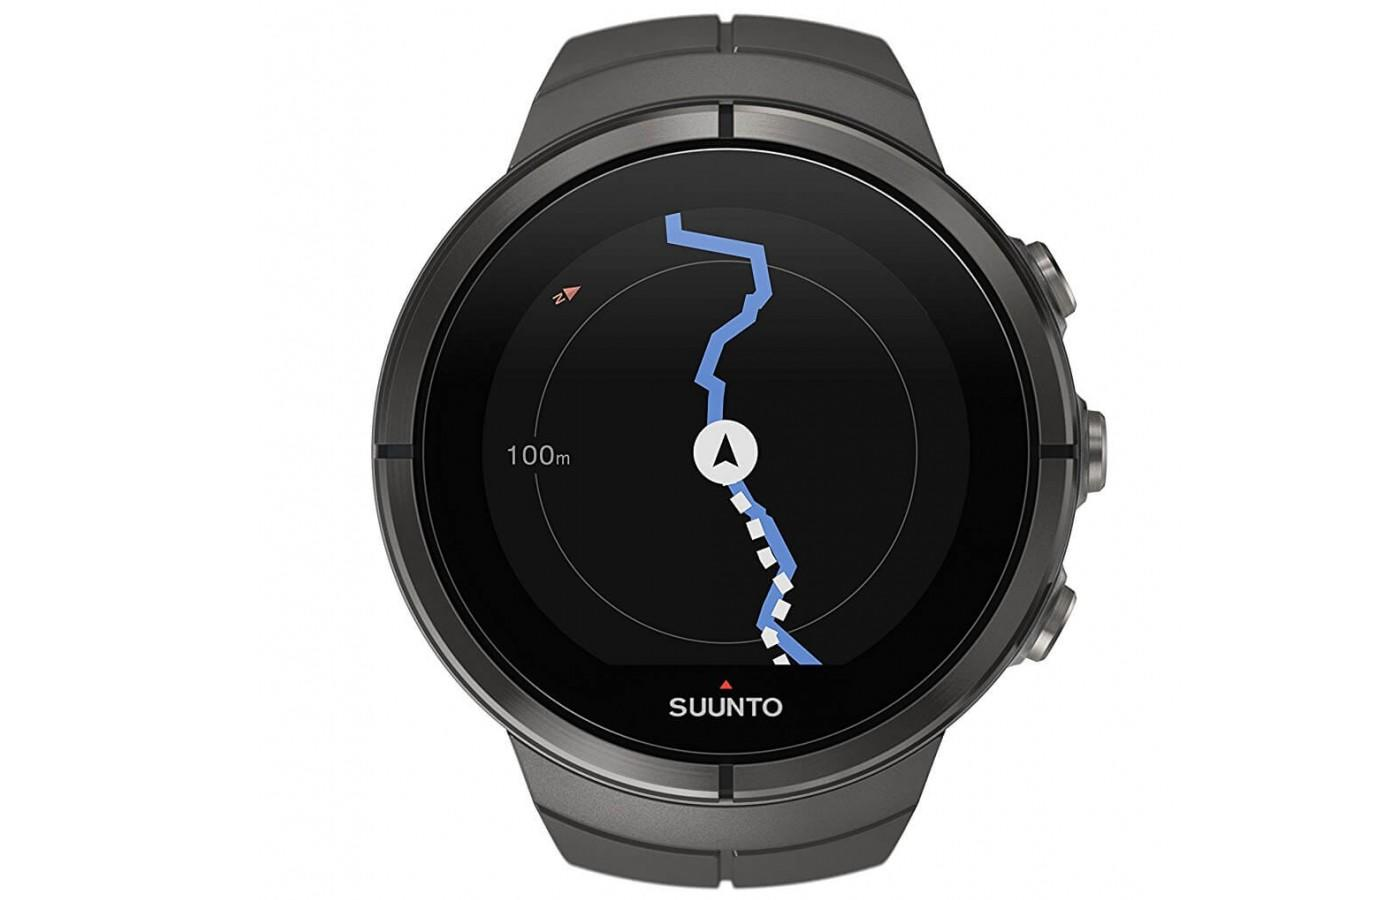 The Suunto Spartan Ultra's GPS mapping system is easy to see and follow